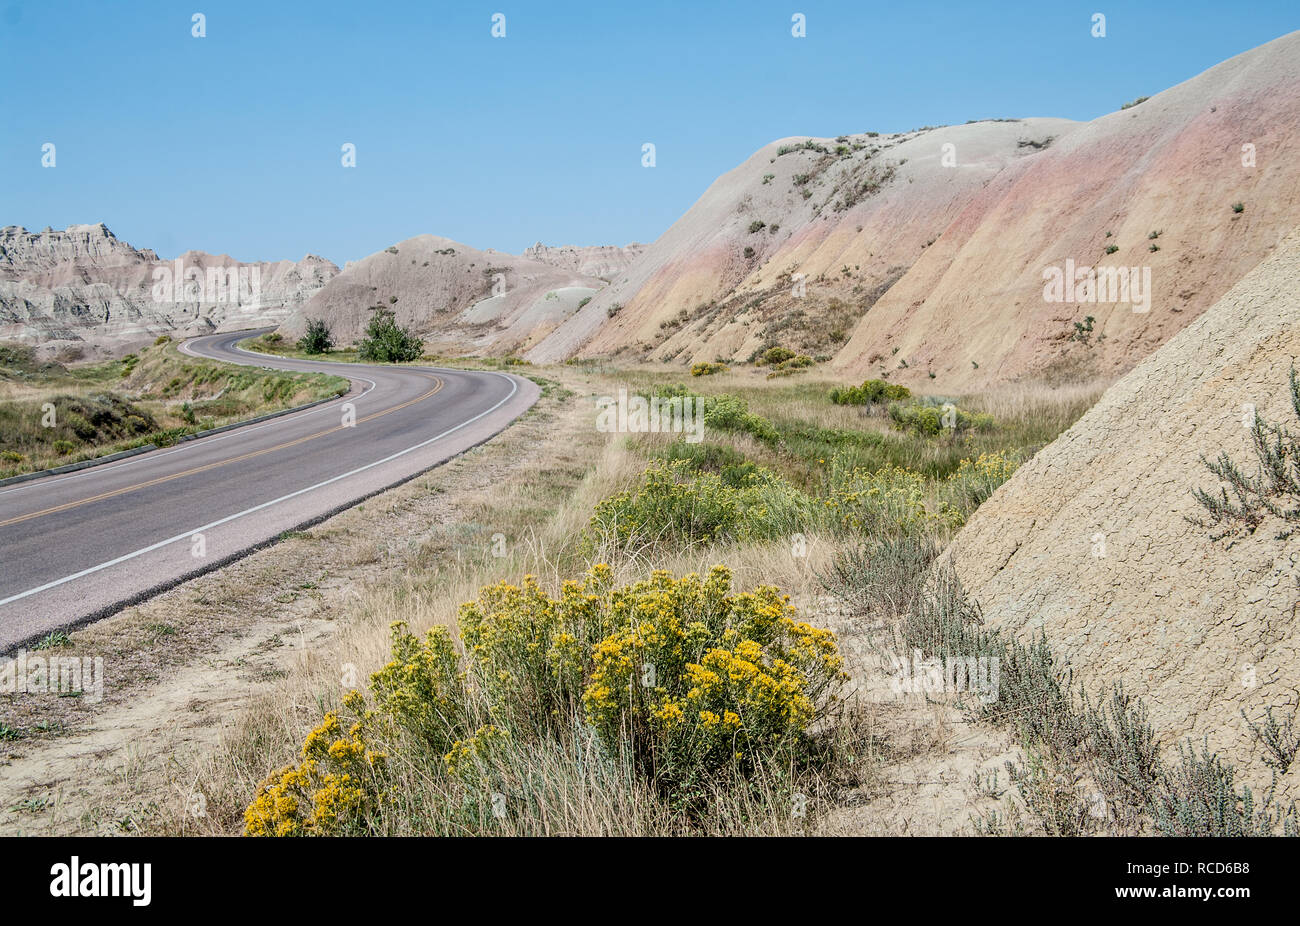 Scenic Drive in South Dakota:  A road in Badlands National Park curves among jagged  formations, blooming wildflowers and arid hills in rainbow colors - Stock Image